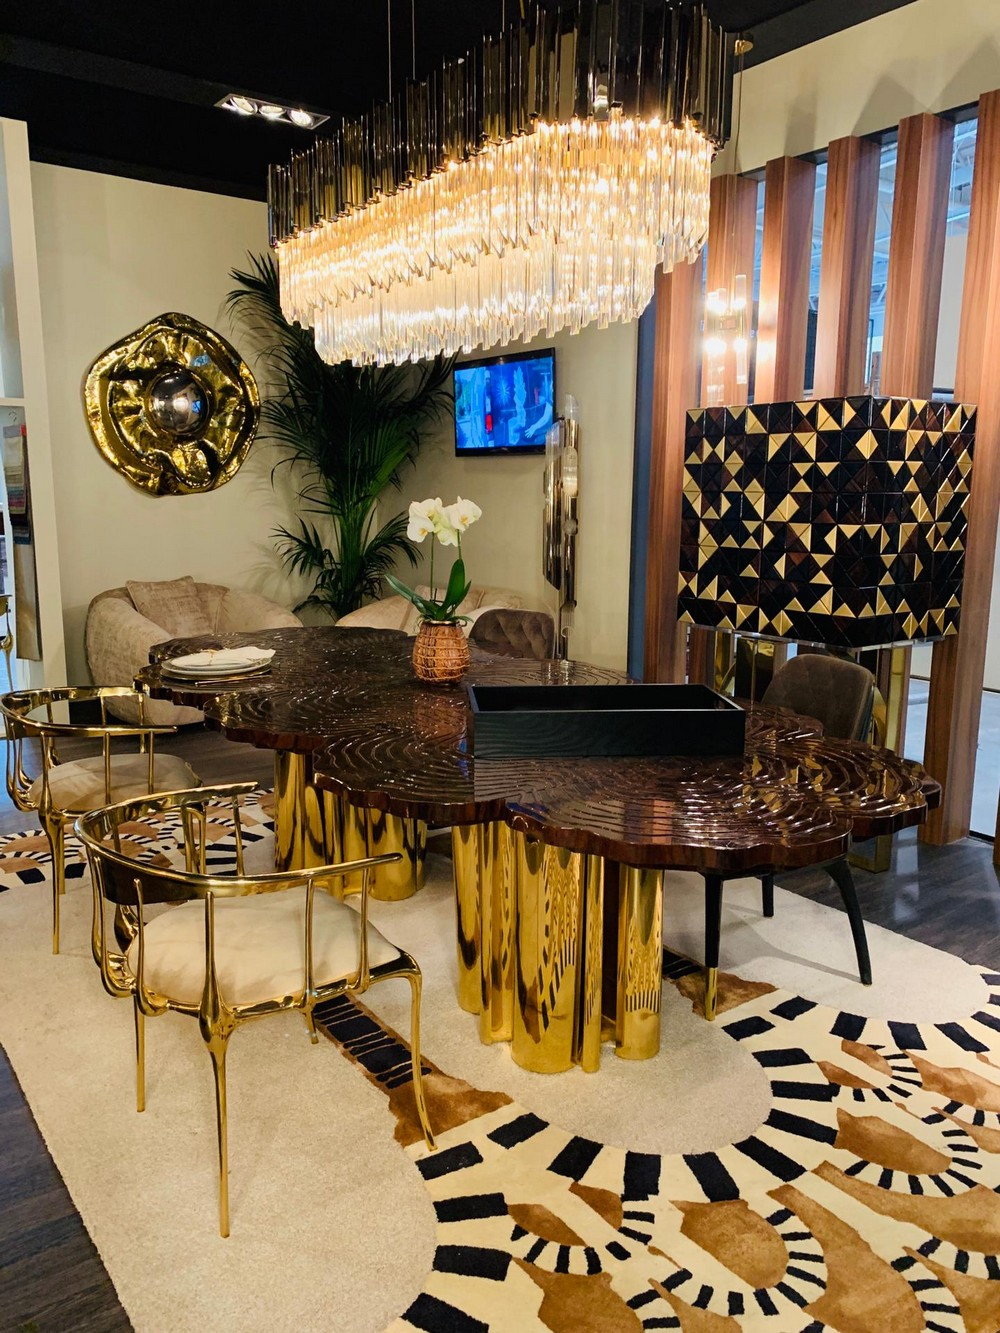 Maison et Objet 2020 - 3 Reasons Why You Should Go To The Event! maison et objet Maison et Objet 2020 – 3 Reasons Why You Should Go To The Event! Maison et Objet 2020 3 Reasons Why You Should Go To The Event 5